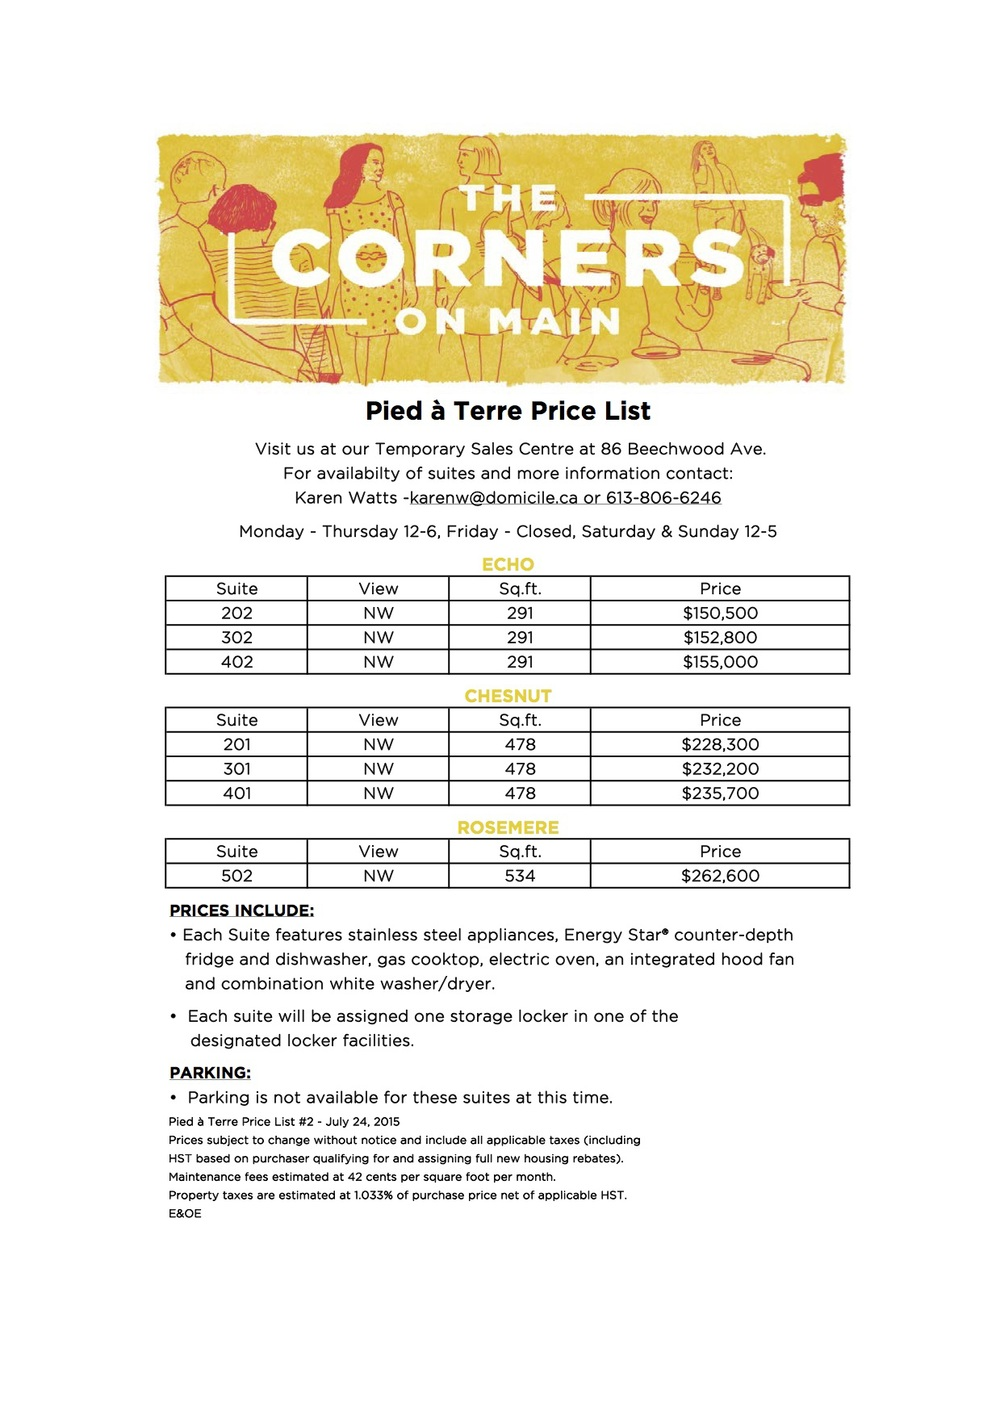 Corners On Main Pricelist_July_24_2015.jpg